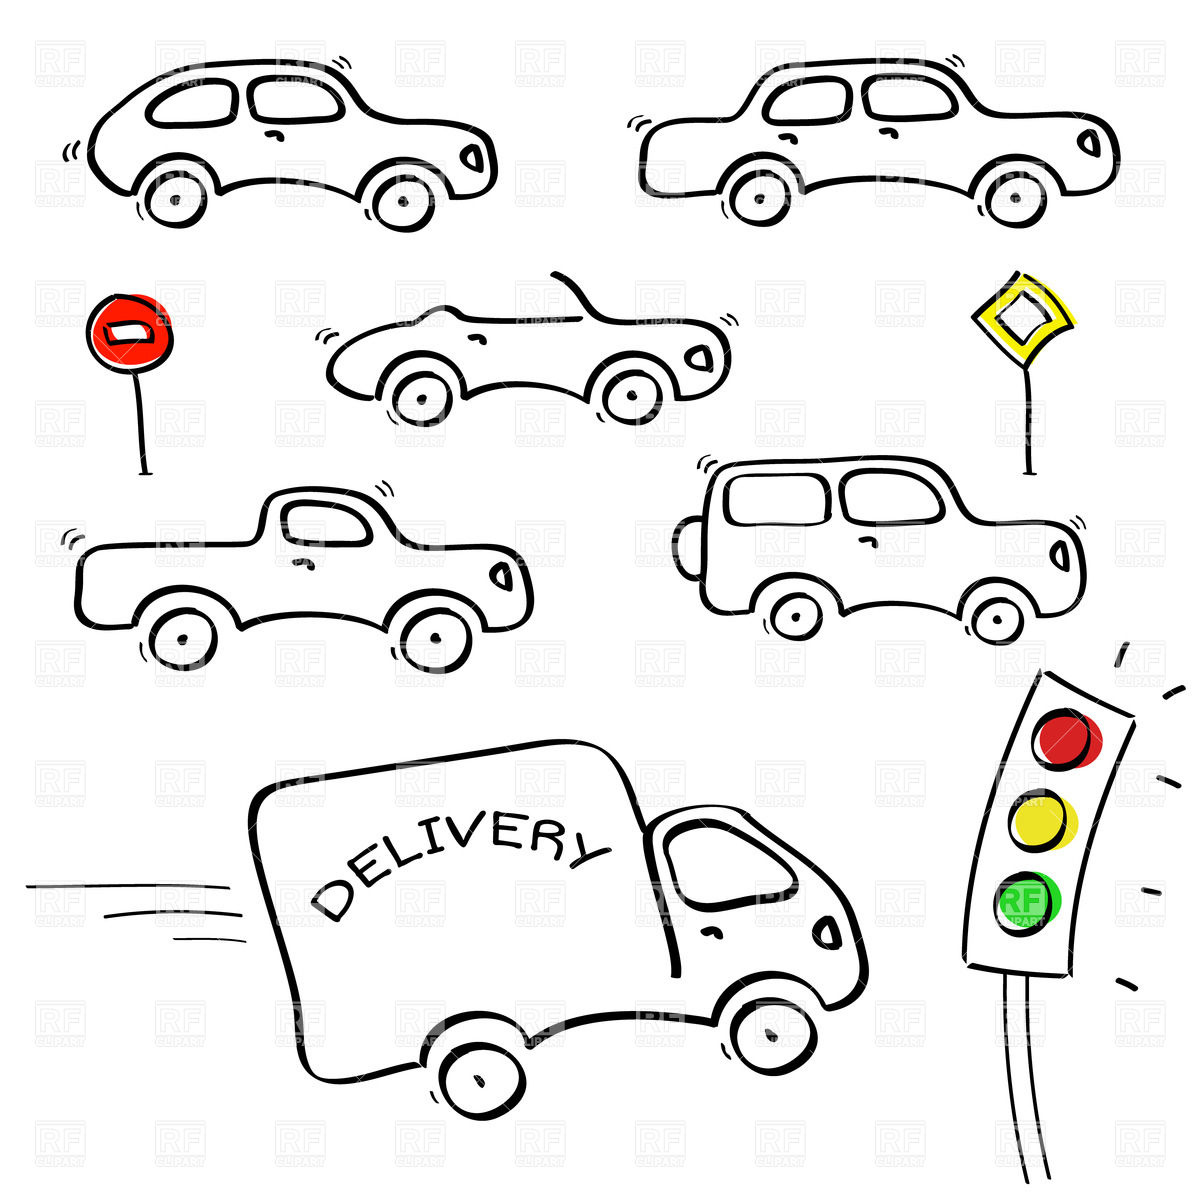 Lovely traffic drawing ideas the best electrical circuit diagram